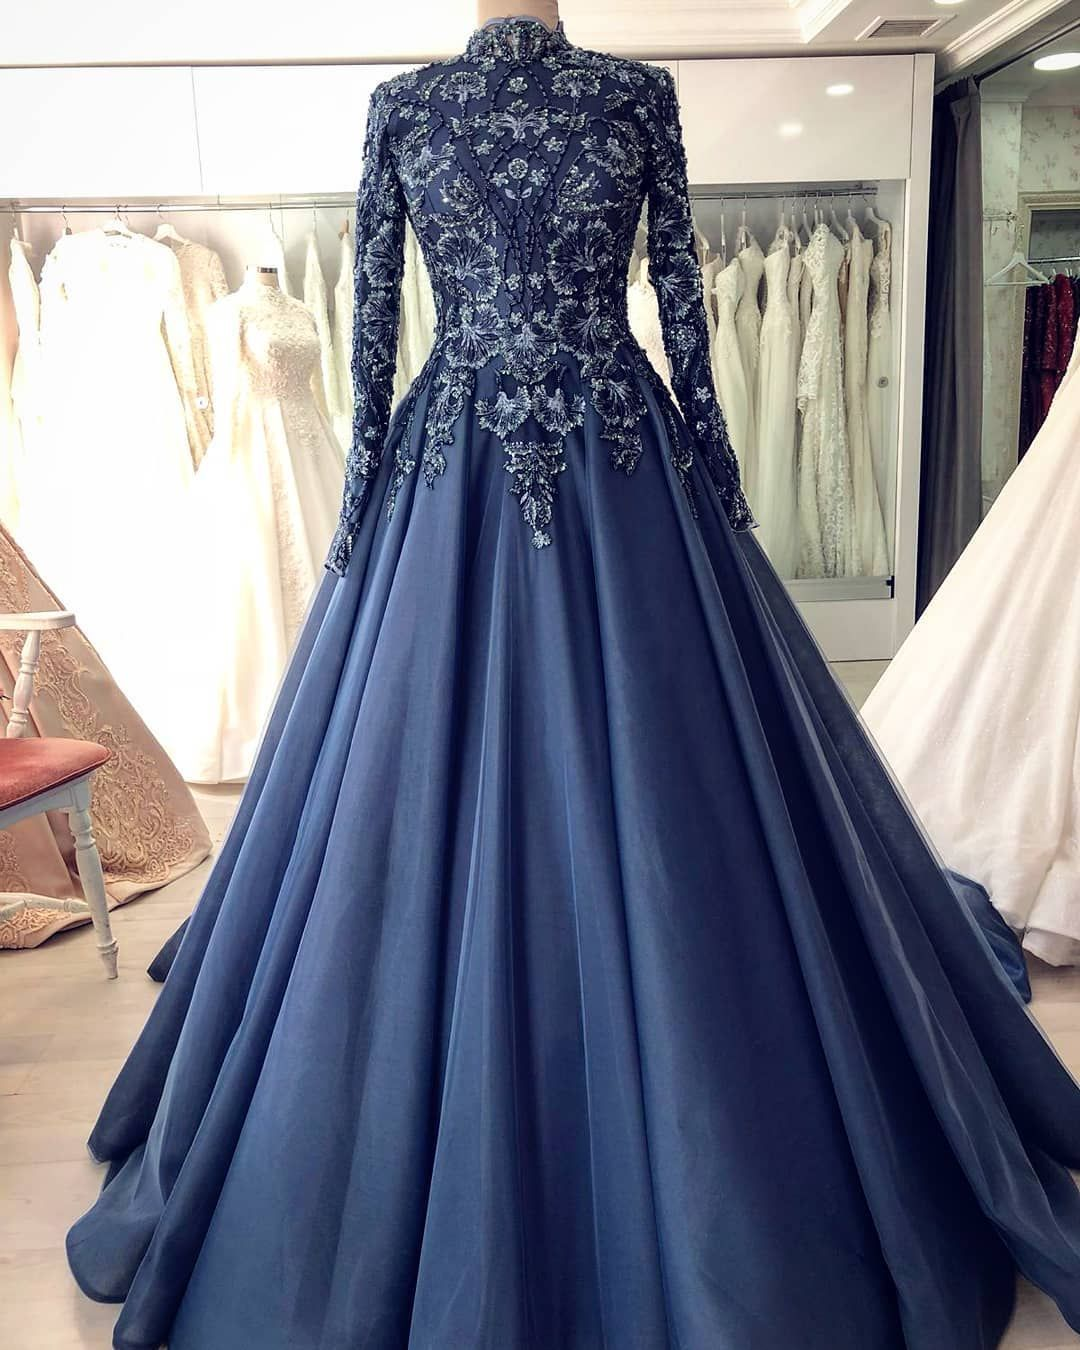 ✓ hairstyles long prom evening dresses #hairstylesforman